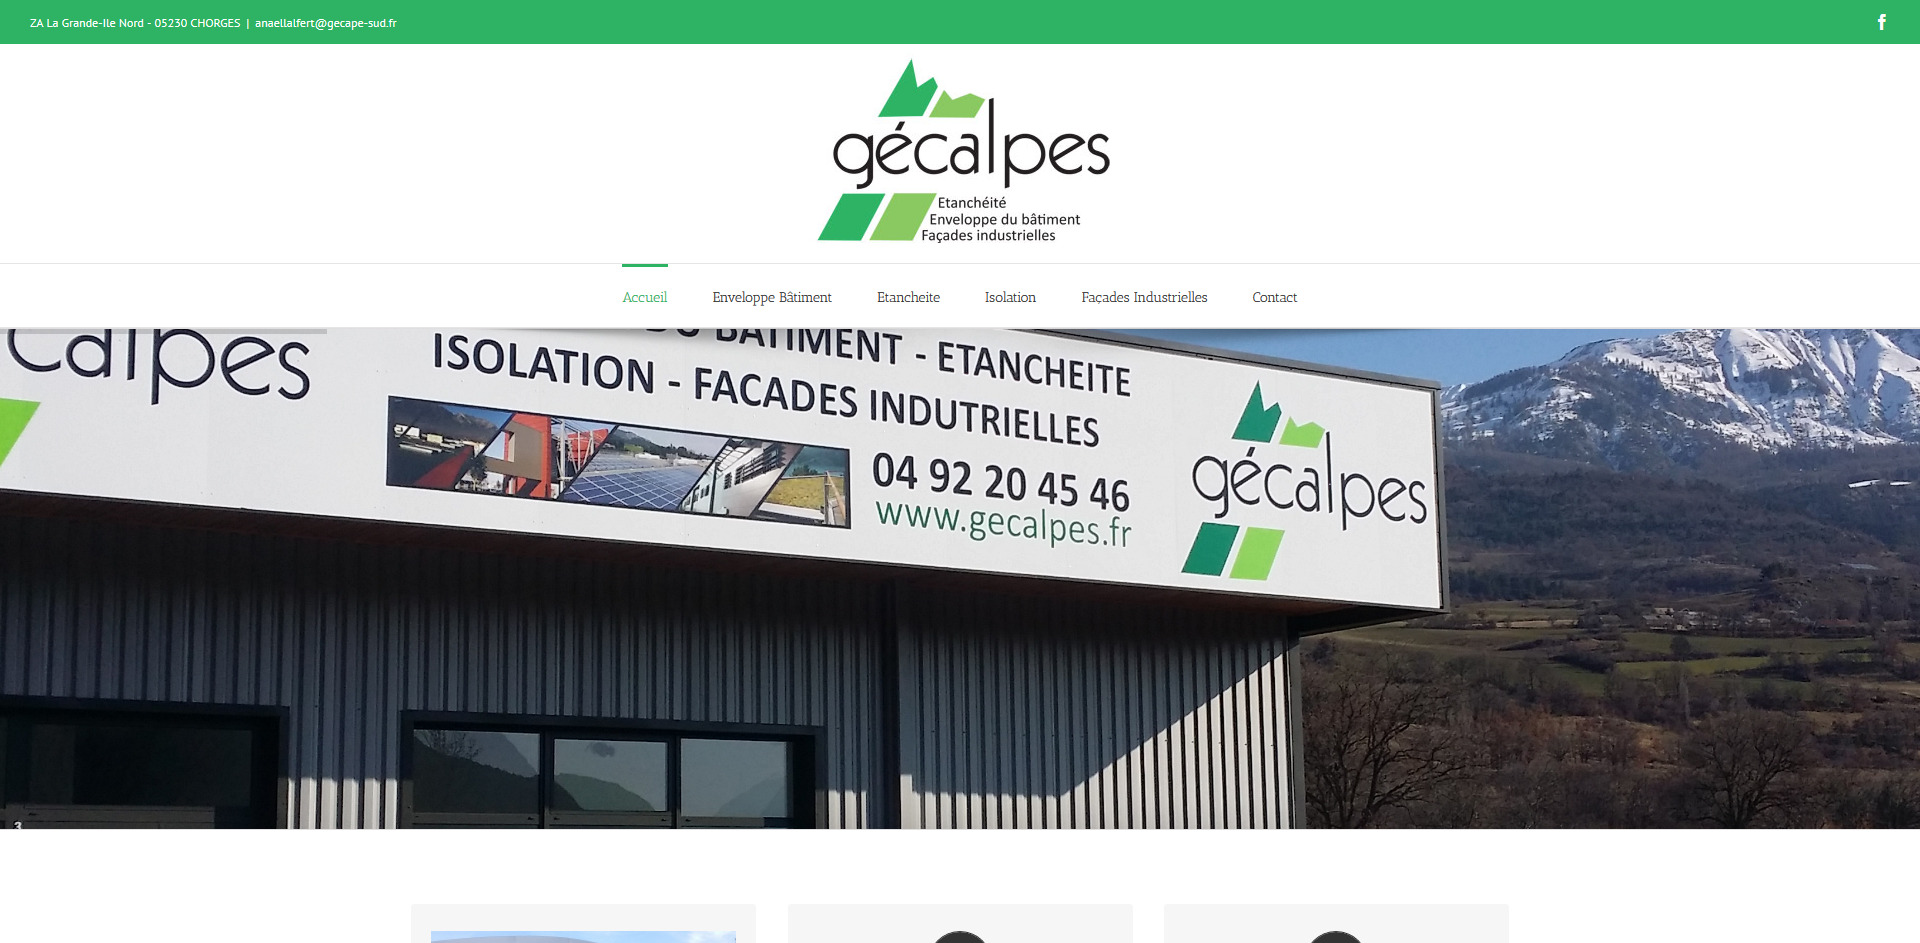 gecalpe, gecape sud, chorges , leasy concept, louer mon site, location de site, vente de site internet, site web, lyon, rhone alpes, creation de site internet